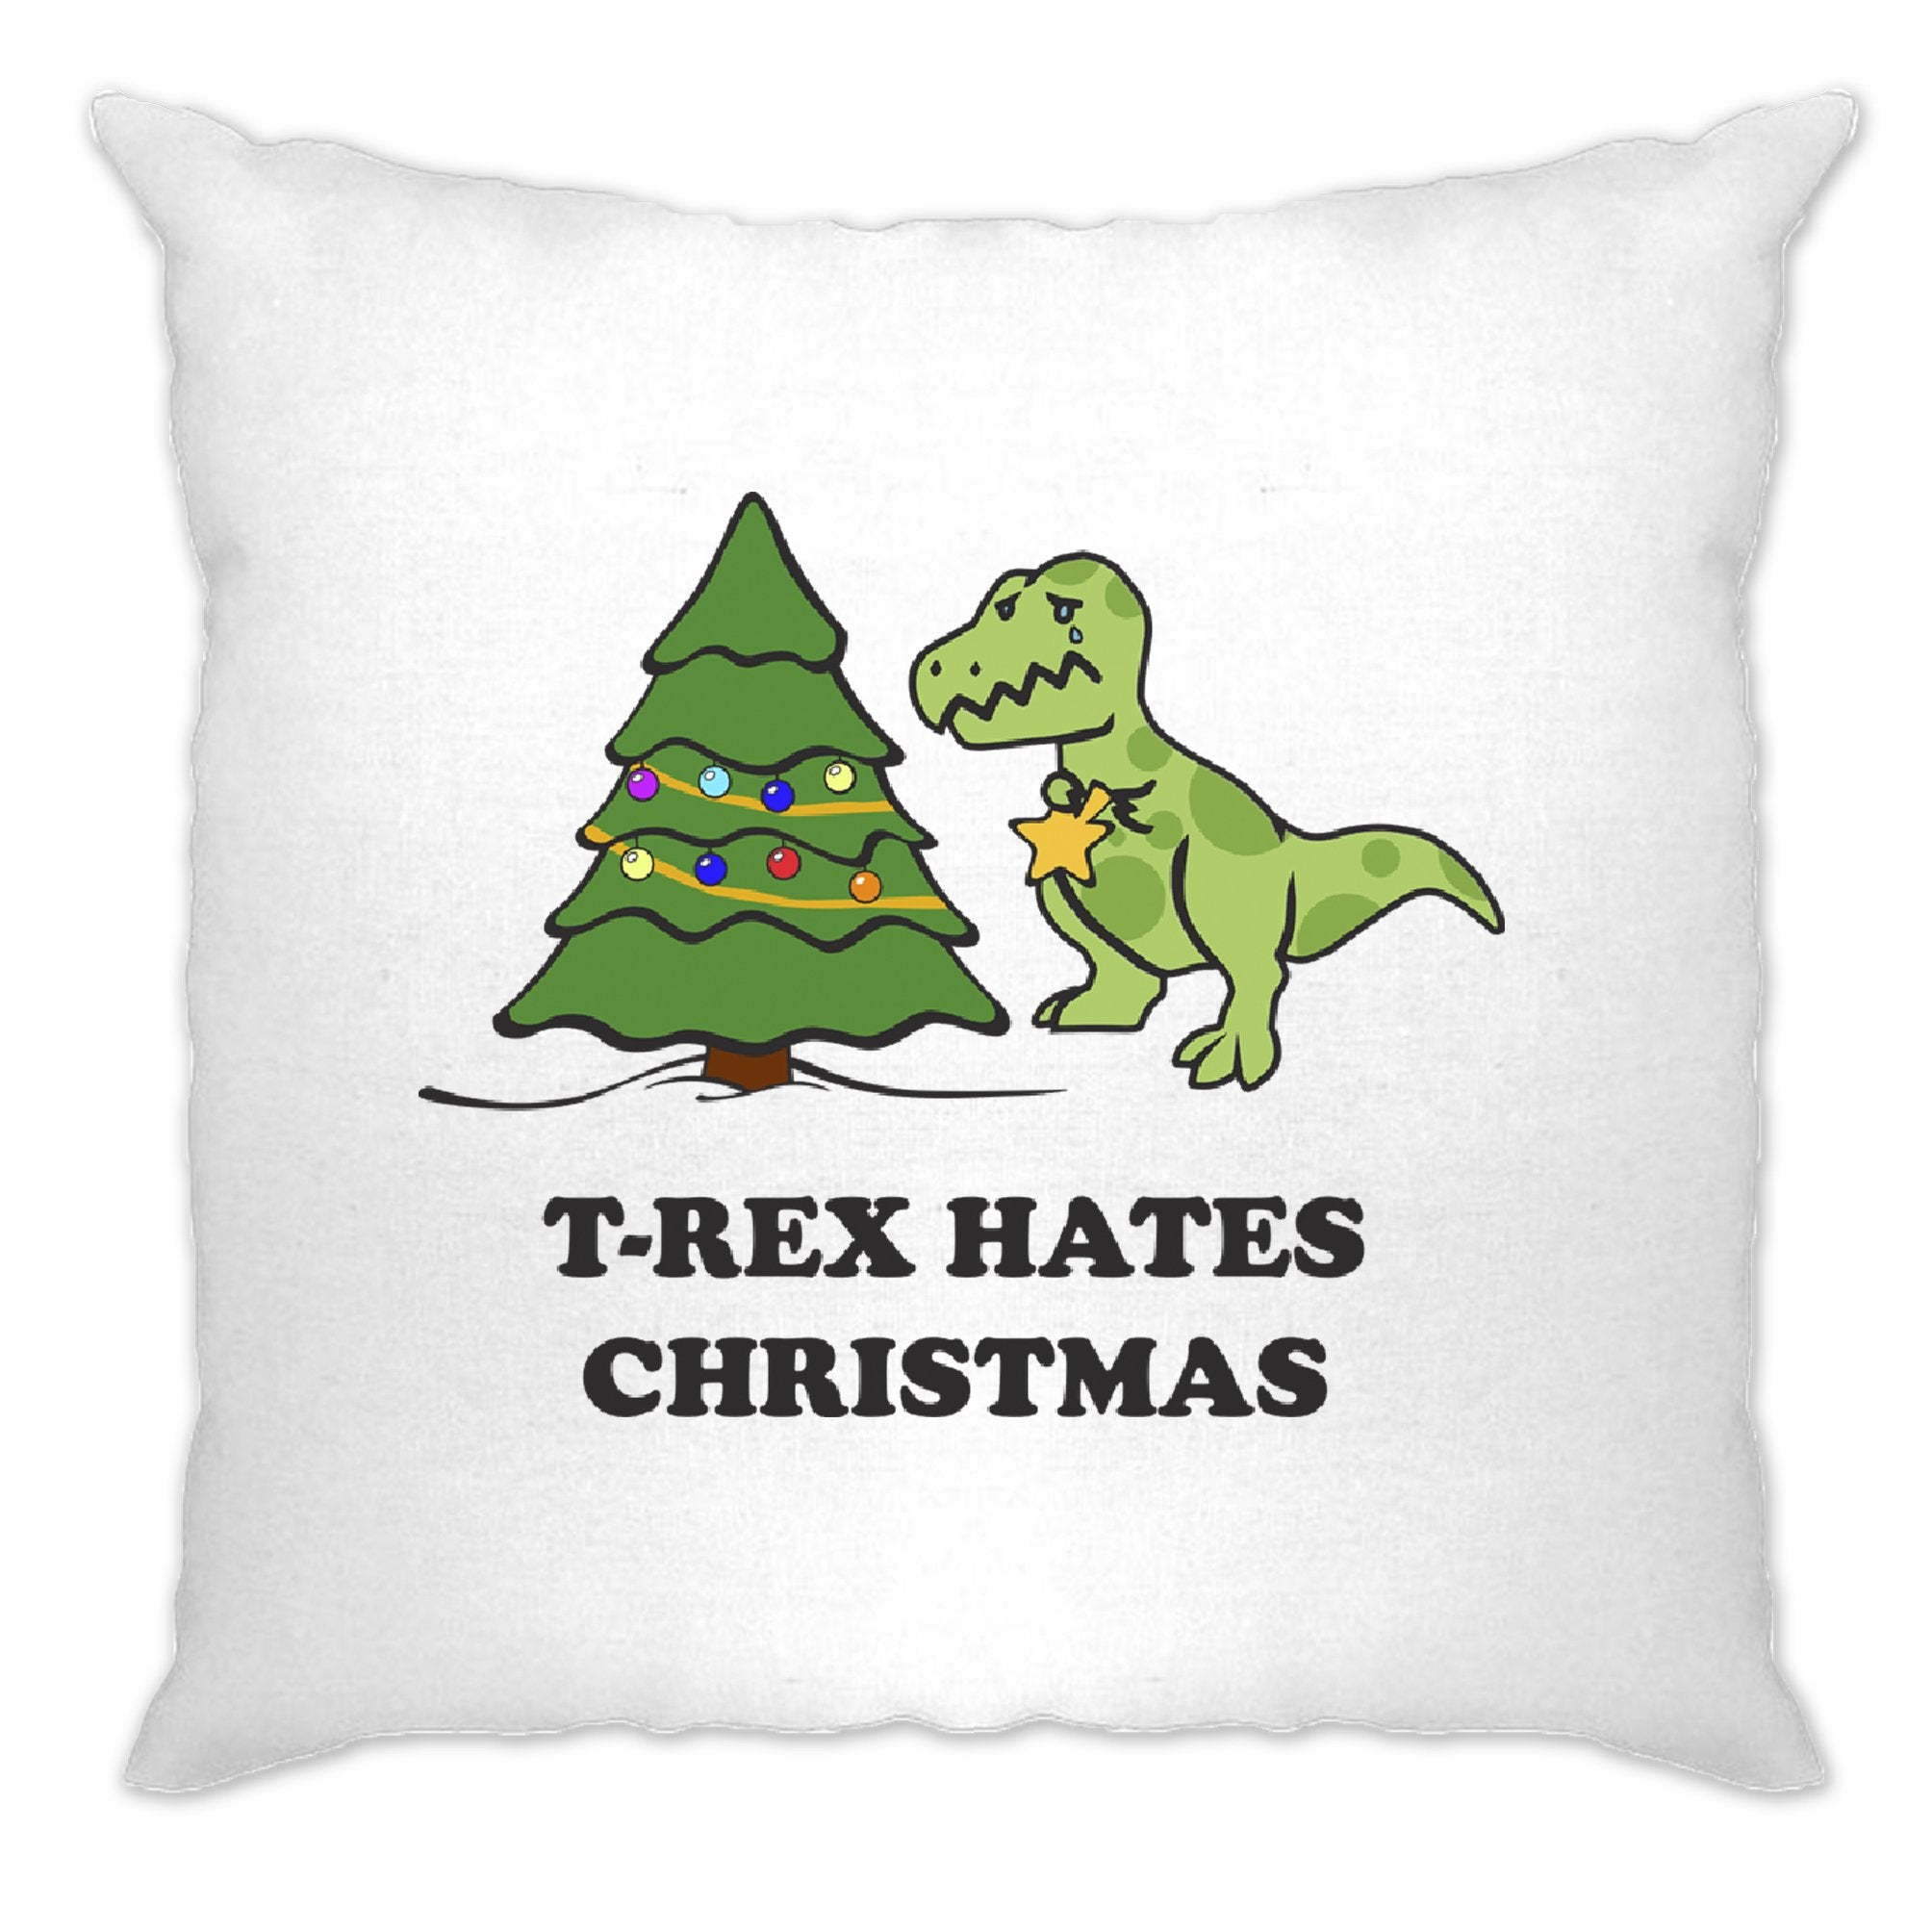 Novelty Xmas Cushion Cover T-Rex Hates Christmas Joke